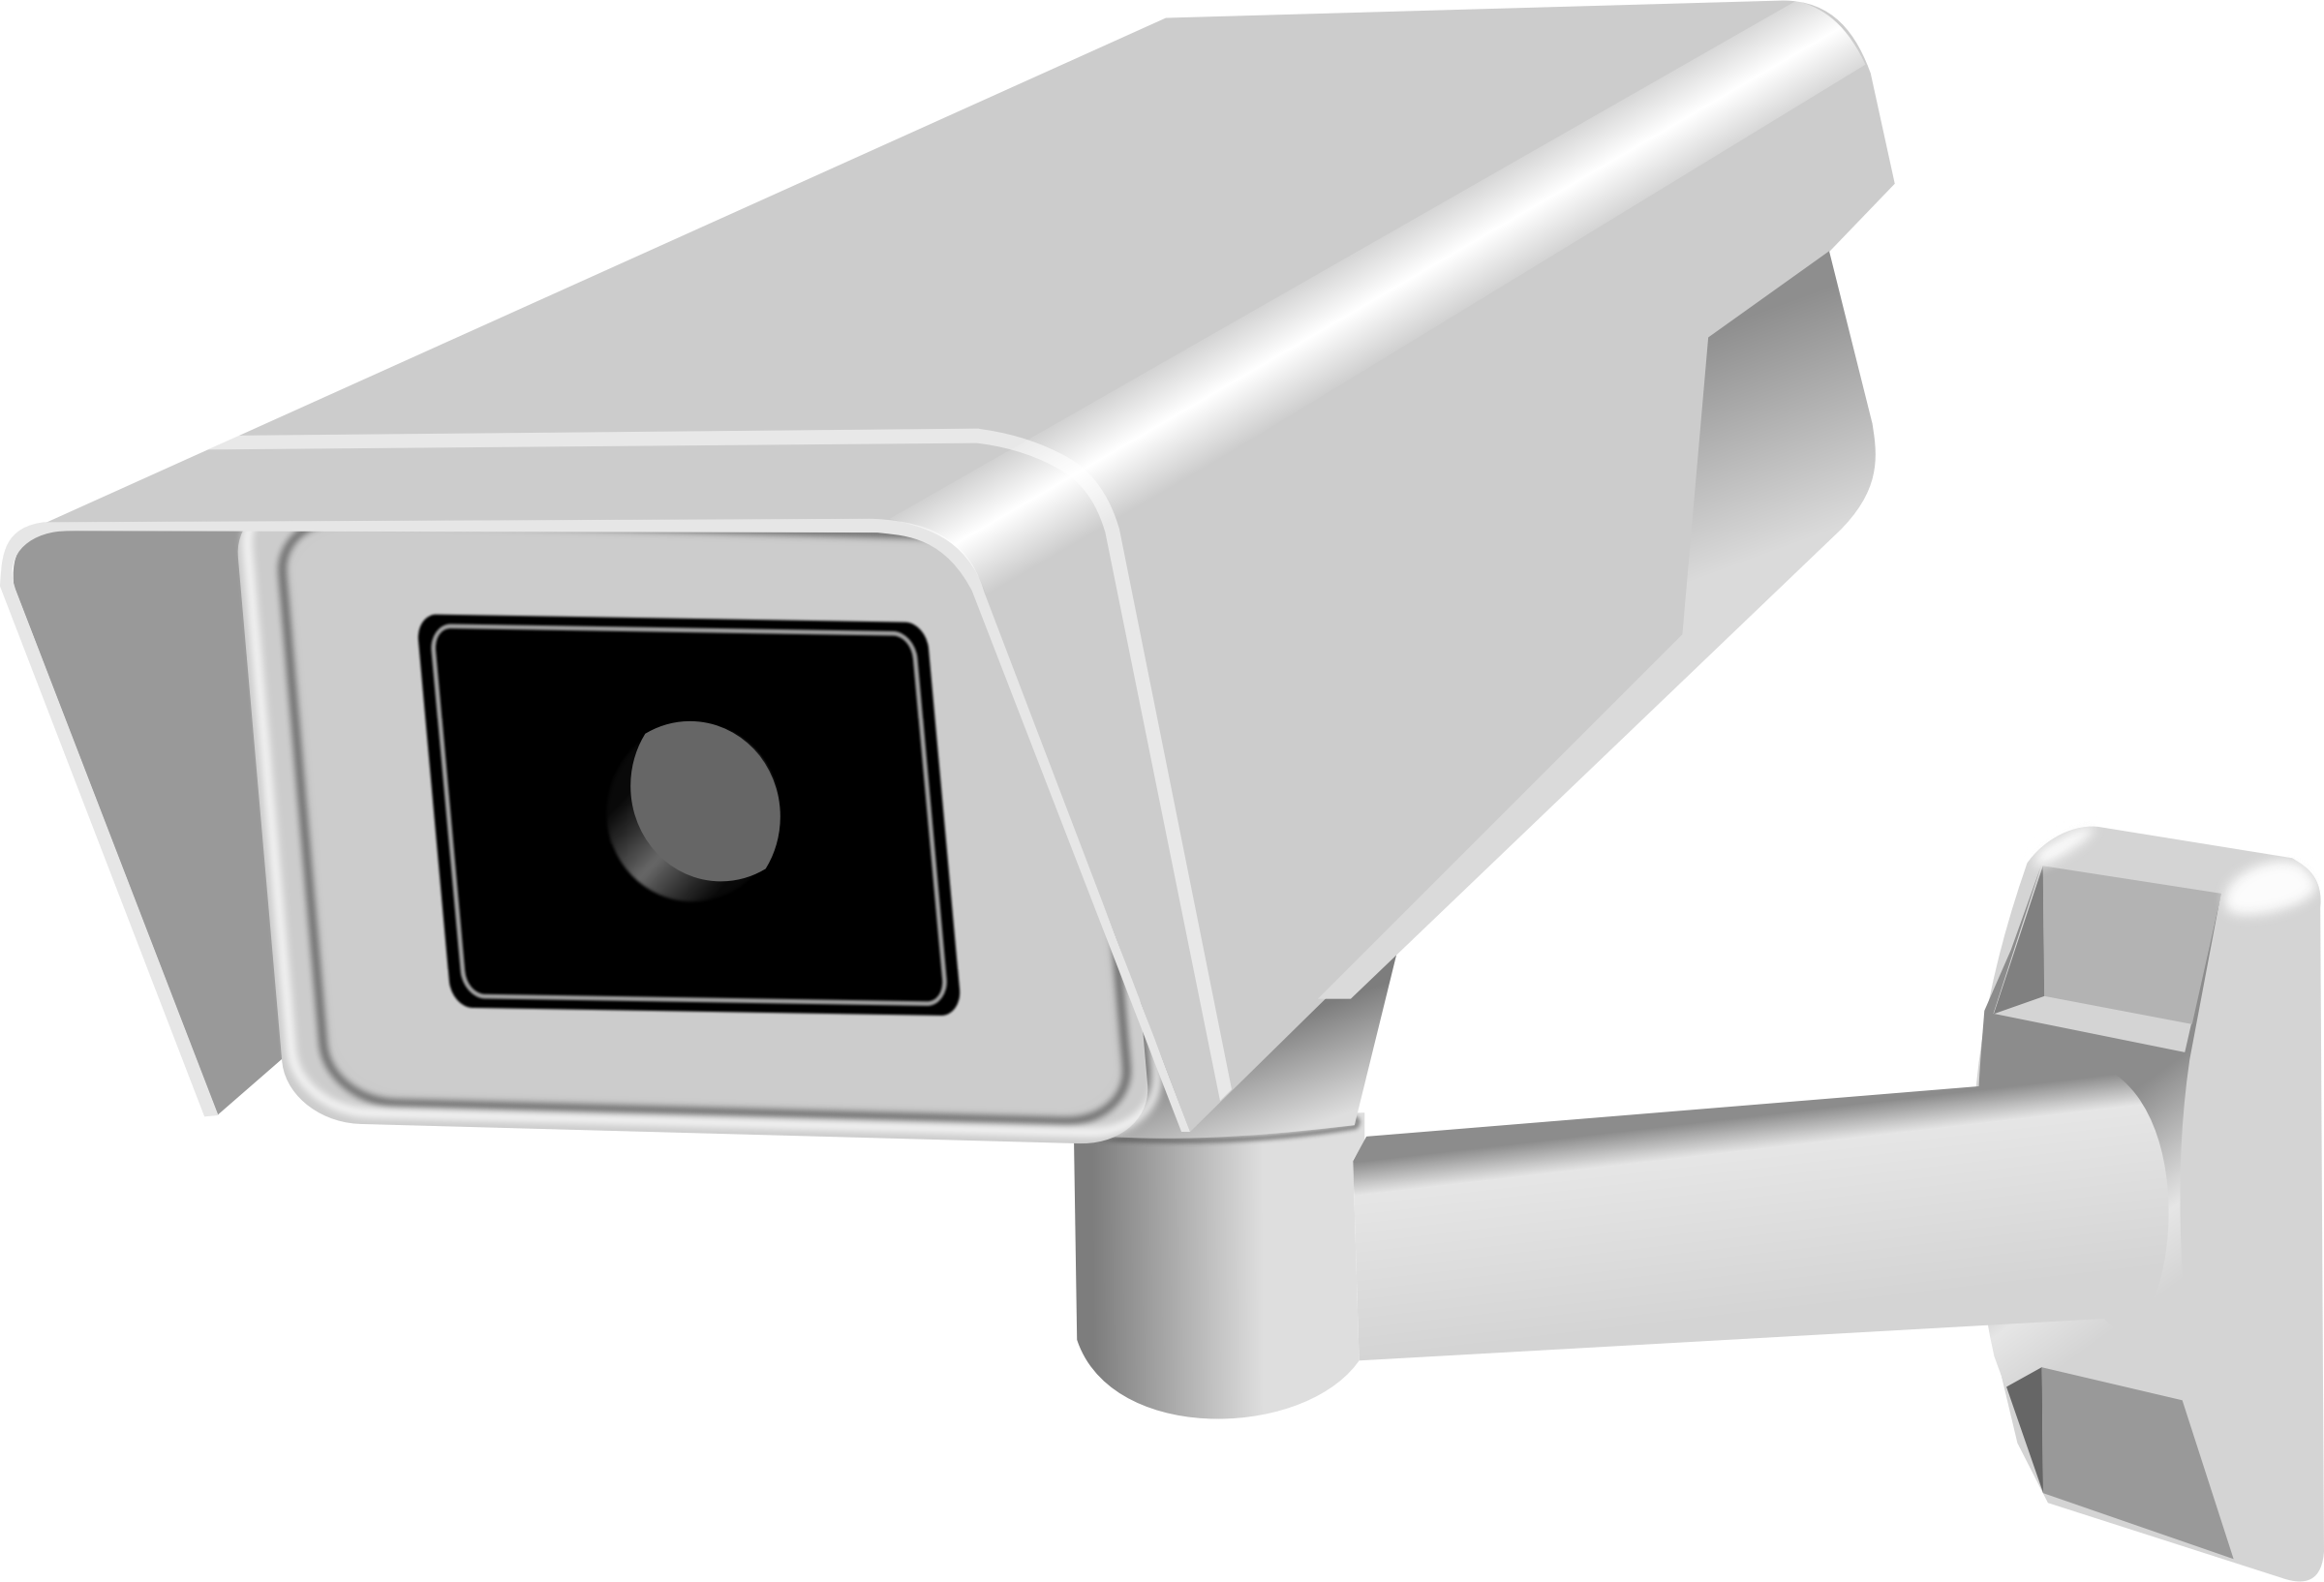 Cctv Camera Philippines Provizionph Is Well Known Security System Company For Installation Of Camera Securi Home Security Systems Home Security Home Protection